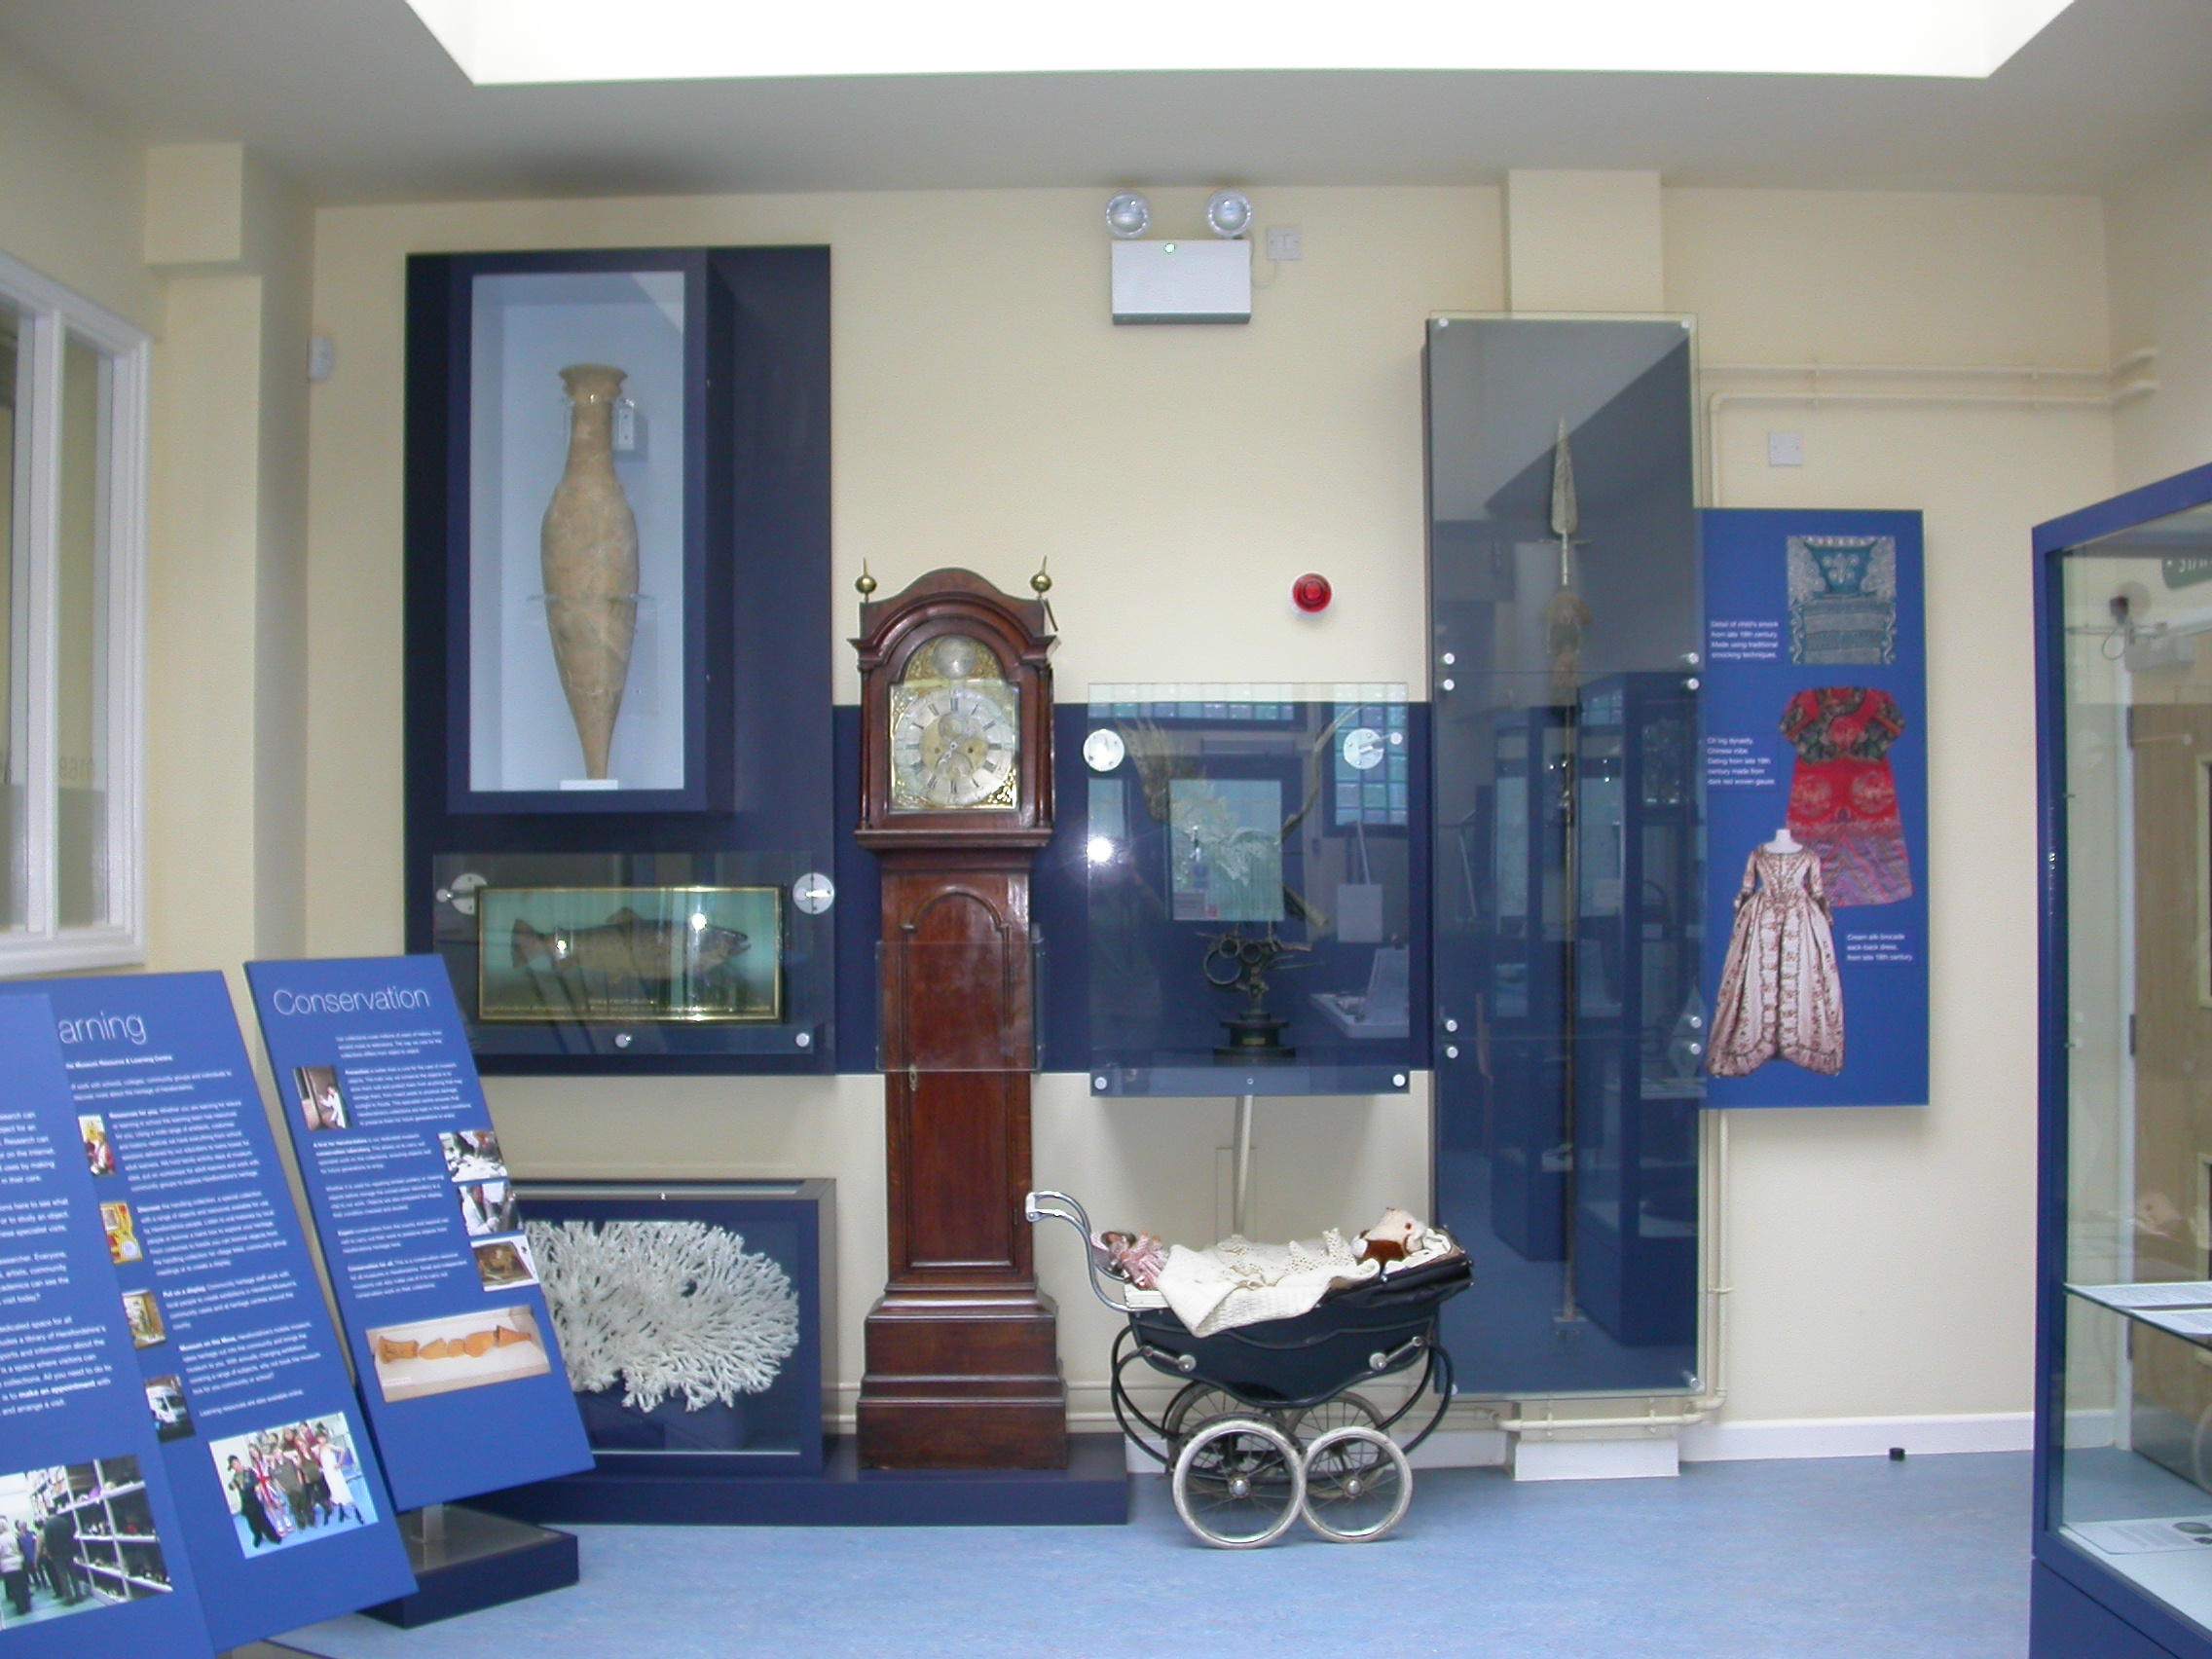 Heritage Open Days: Museum Resource & Learning Centre